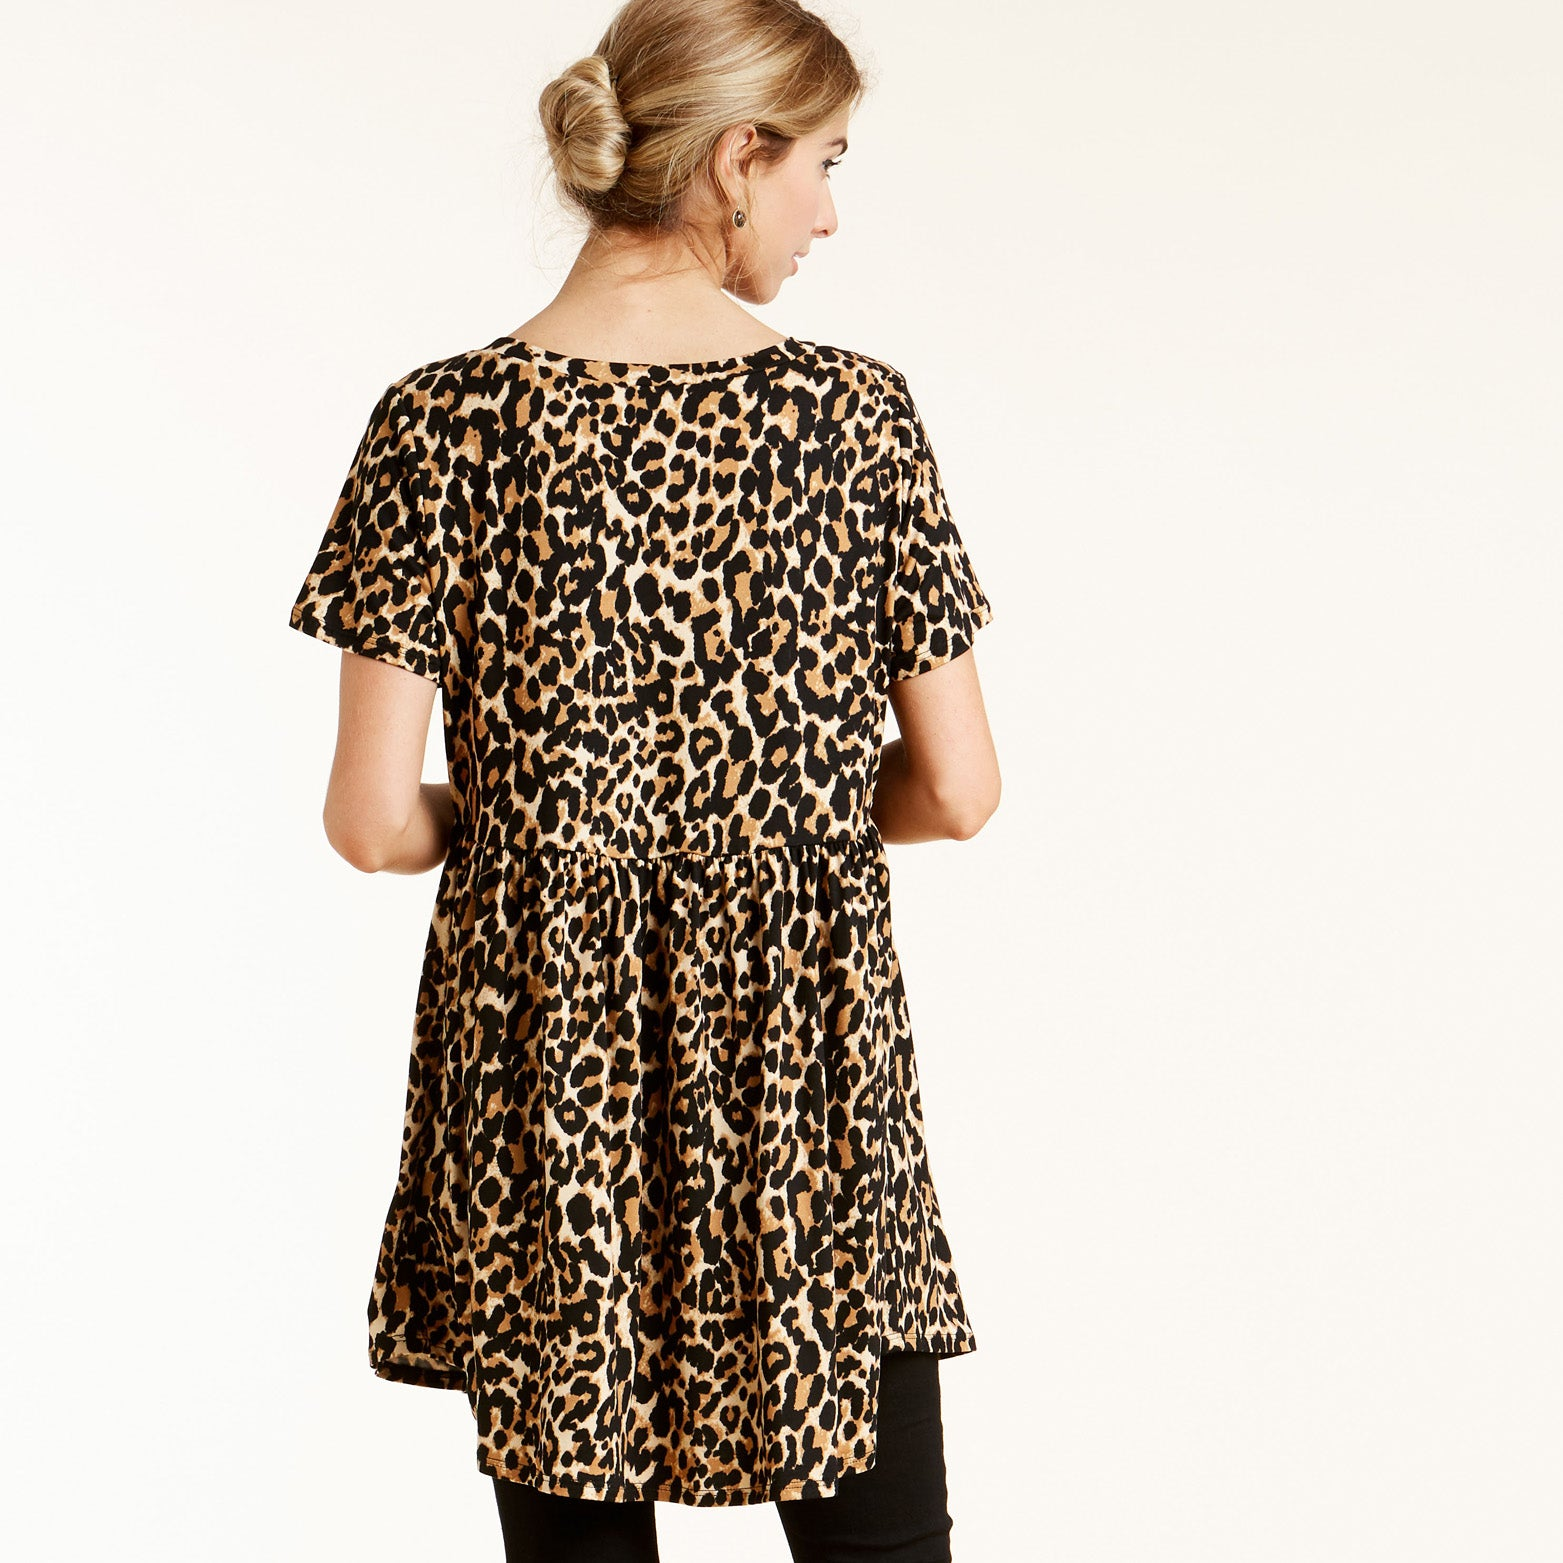 Wild Thing Tunic Top - Love, Kuza